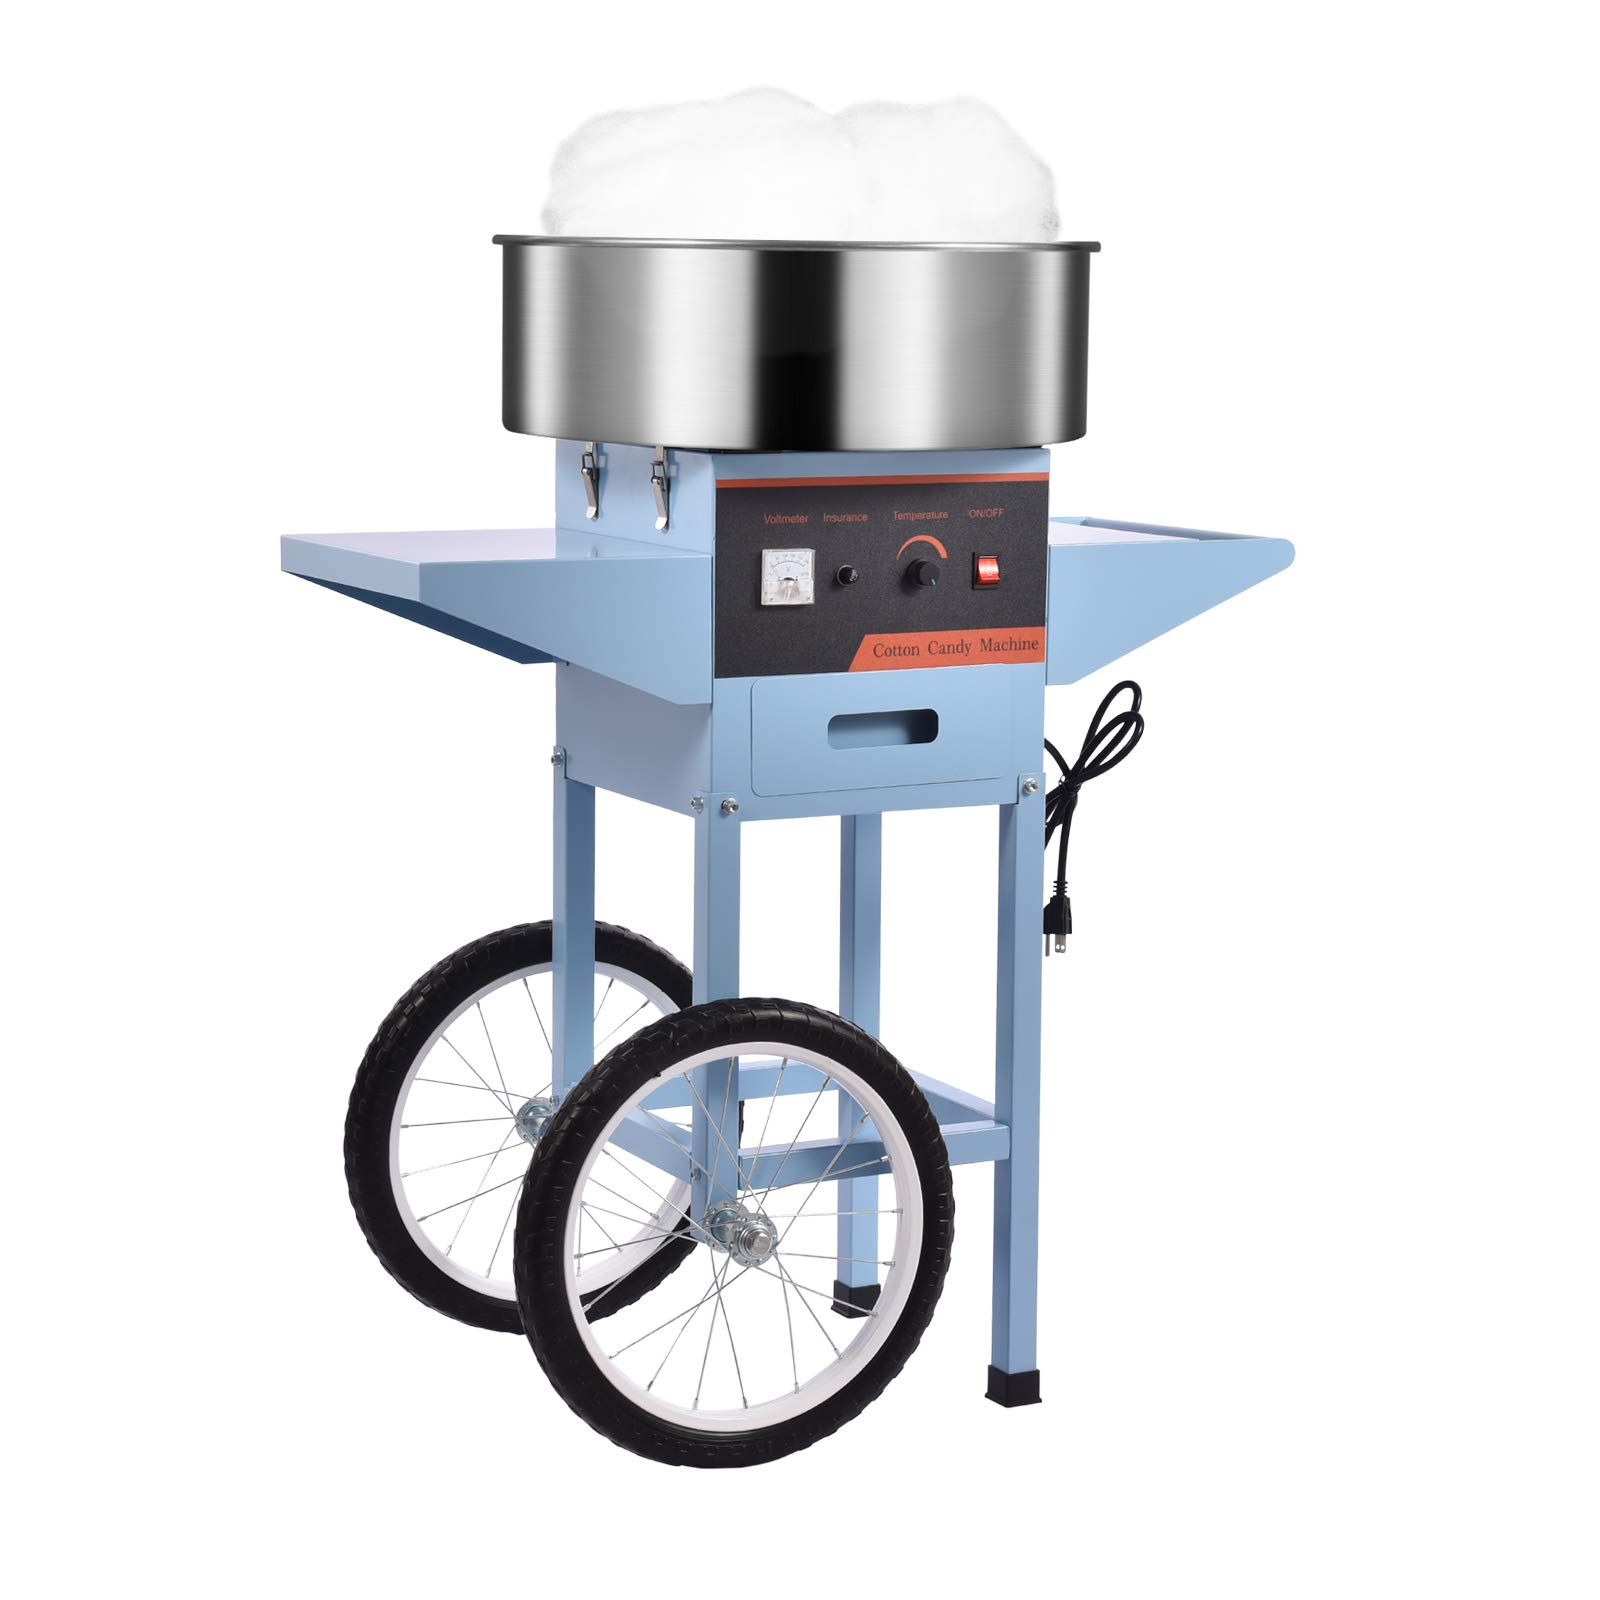 20.5 Inch Commercial Candy Cotton Candy Machine for Kids Electric Floss Maker with Cart Stainless Steel Sugar Spoon with Fuse, Big Drawer Pink for Various Parties, Blue, 1000W